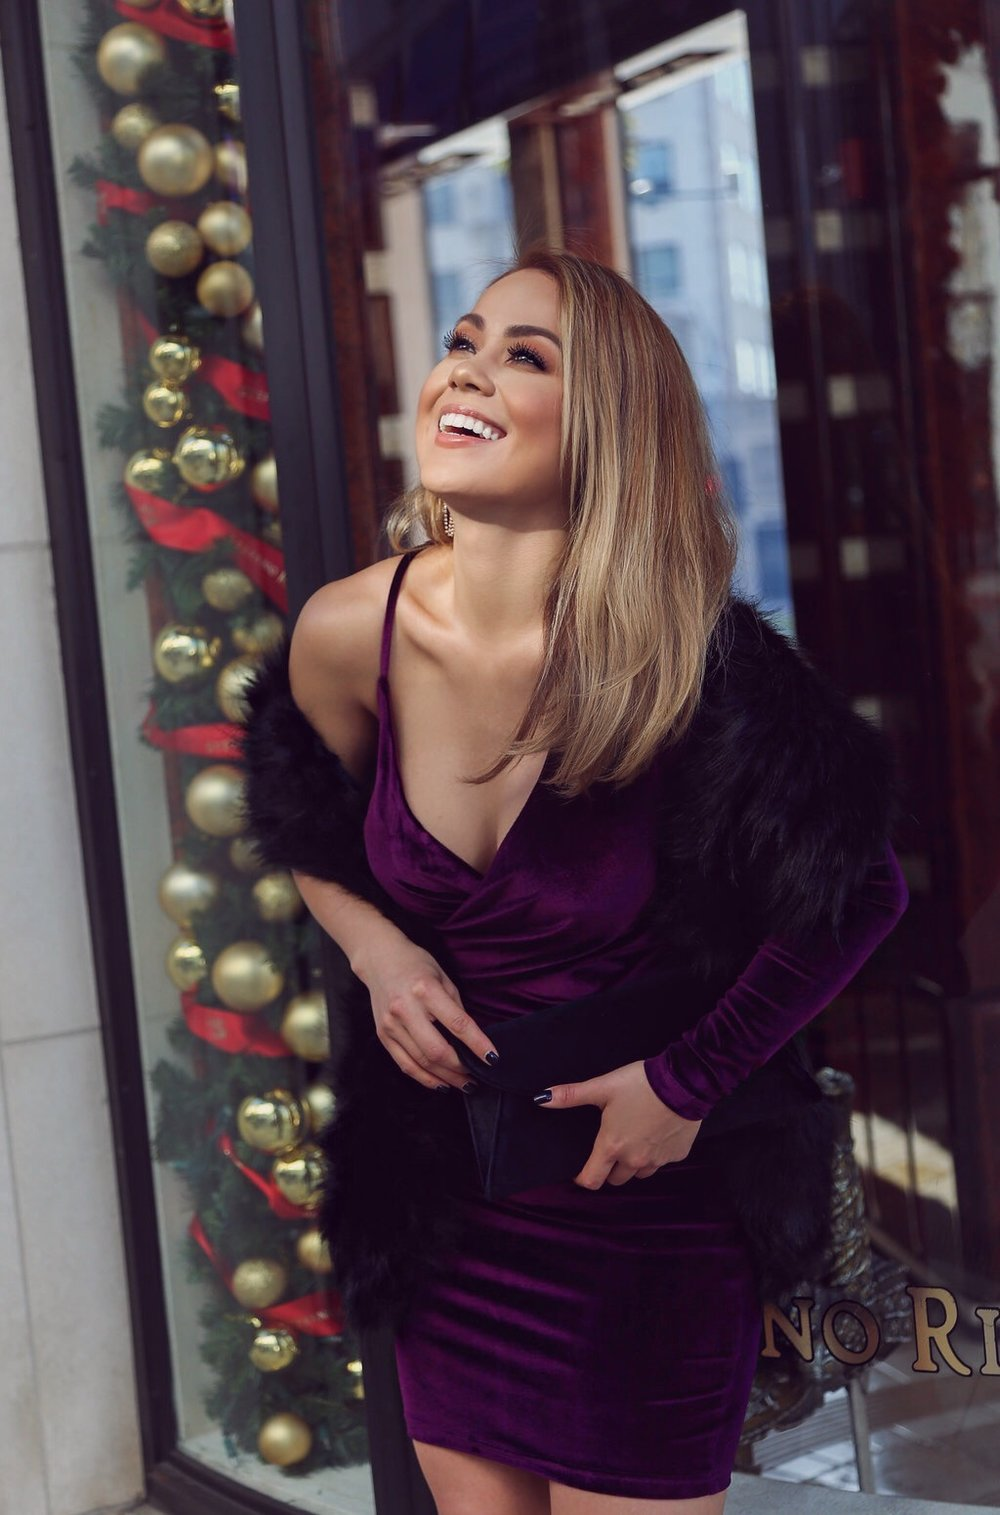 Charlotte Russe, charlotte russe holiday dress, charlotte russe heels, Charlotte Russe Heels. Charlotte Russe Holiday Dress, Charlotte Russe Women, LA Blogger, la blogger, charlotte russe,